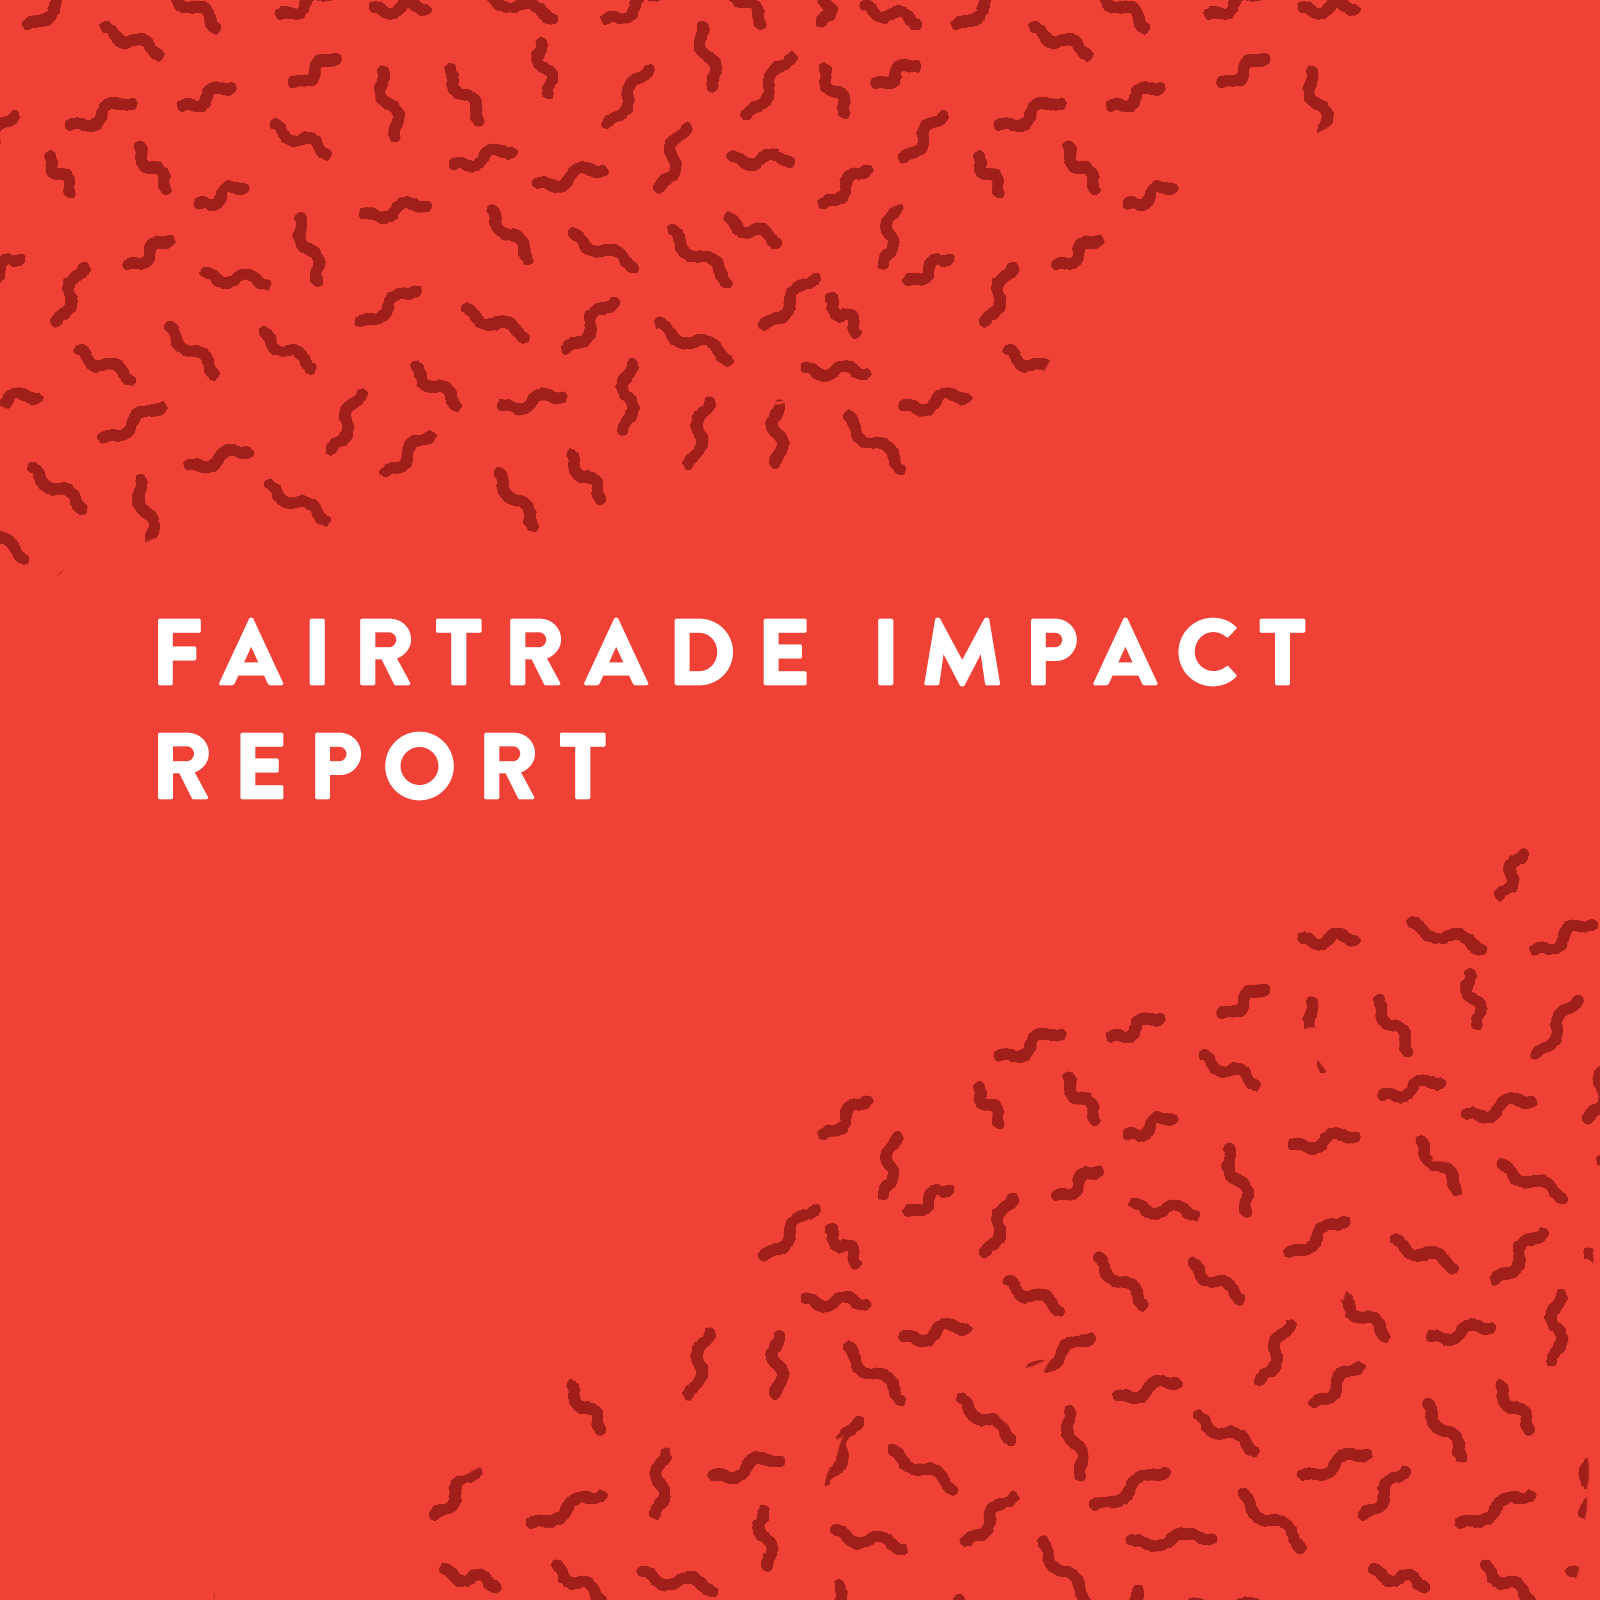 Fairtrade Impact Report 2020